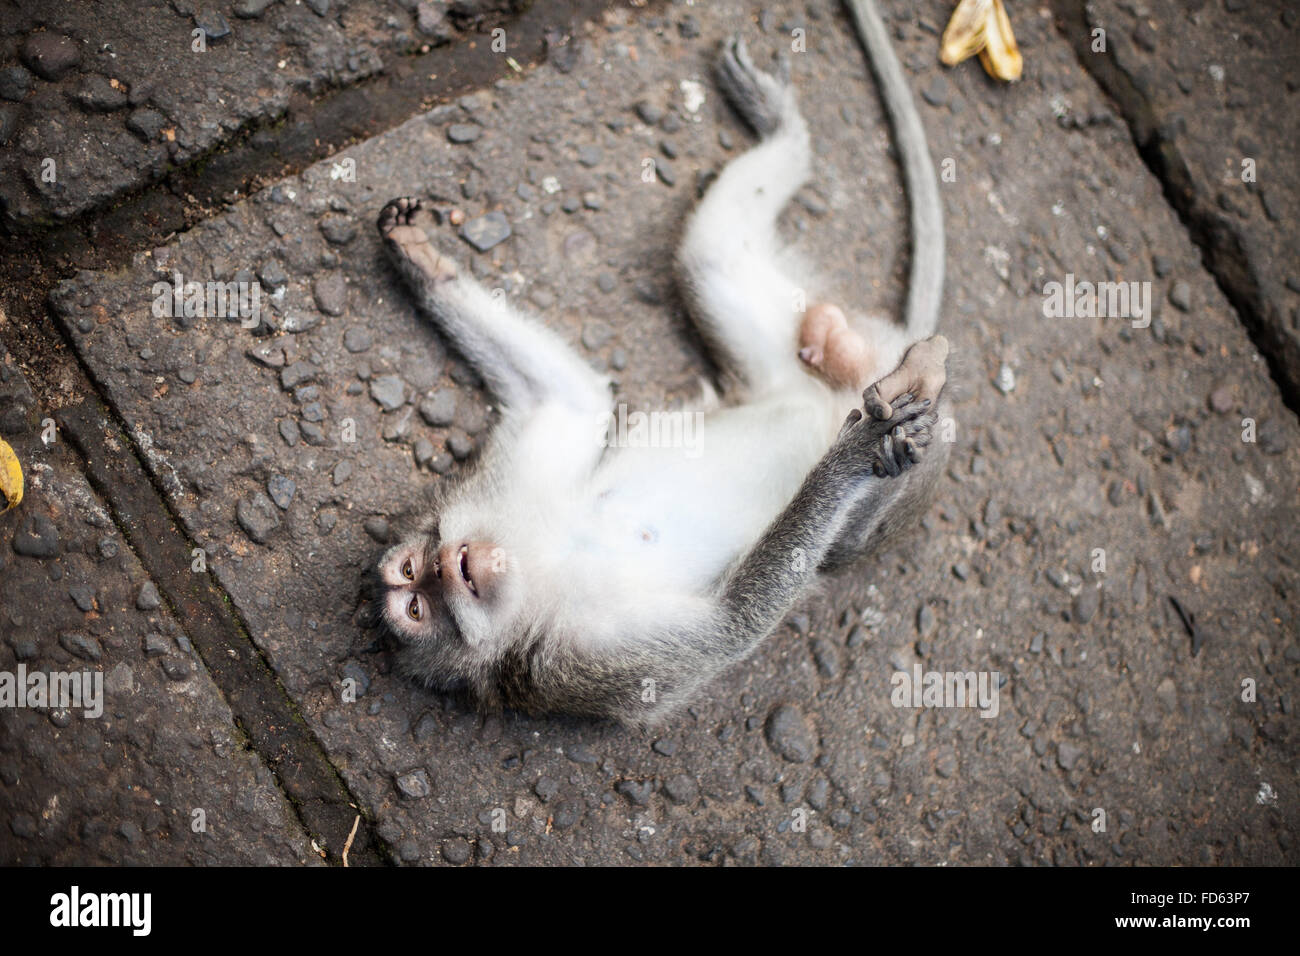 Elevated View Of Monkey On Ground - Stock Image